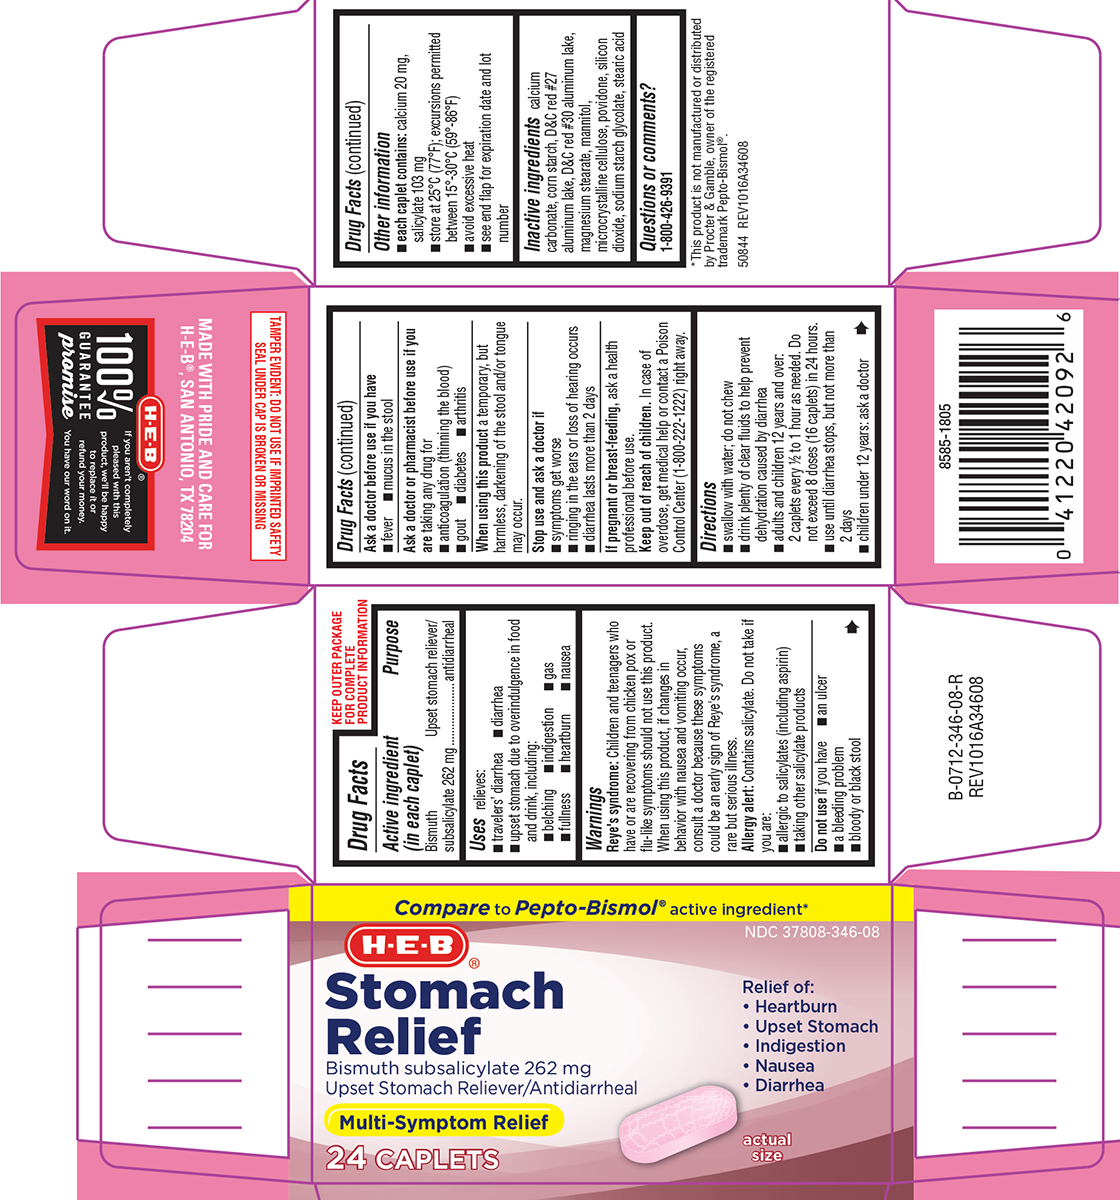 Stomach Relief (Bismuth Subsalicylate) Capsule [H E B]